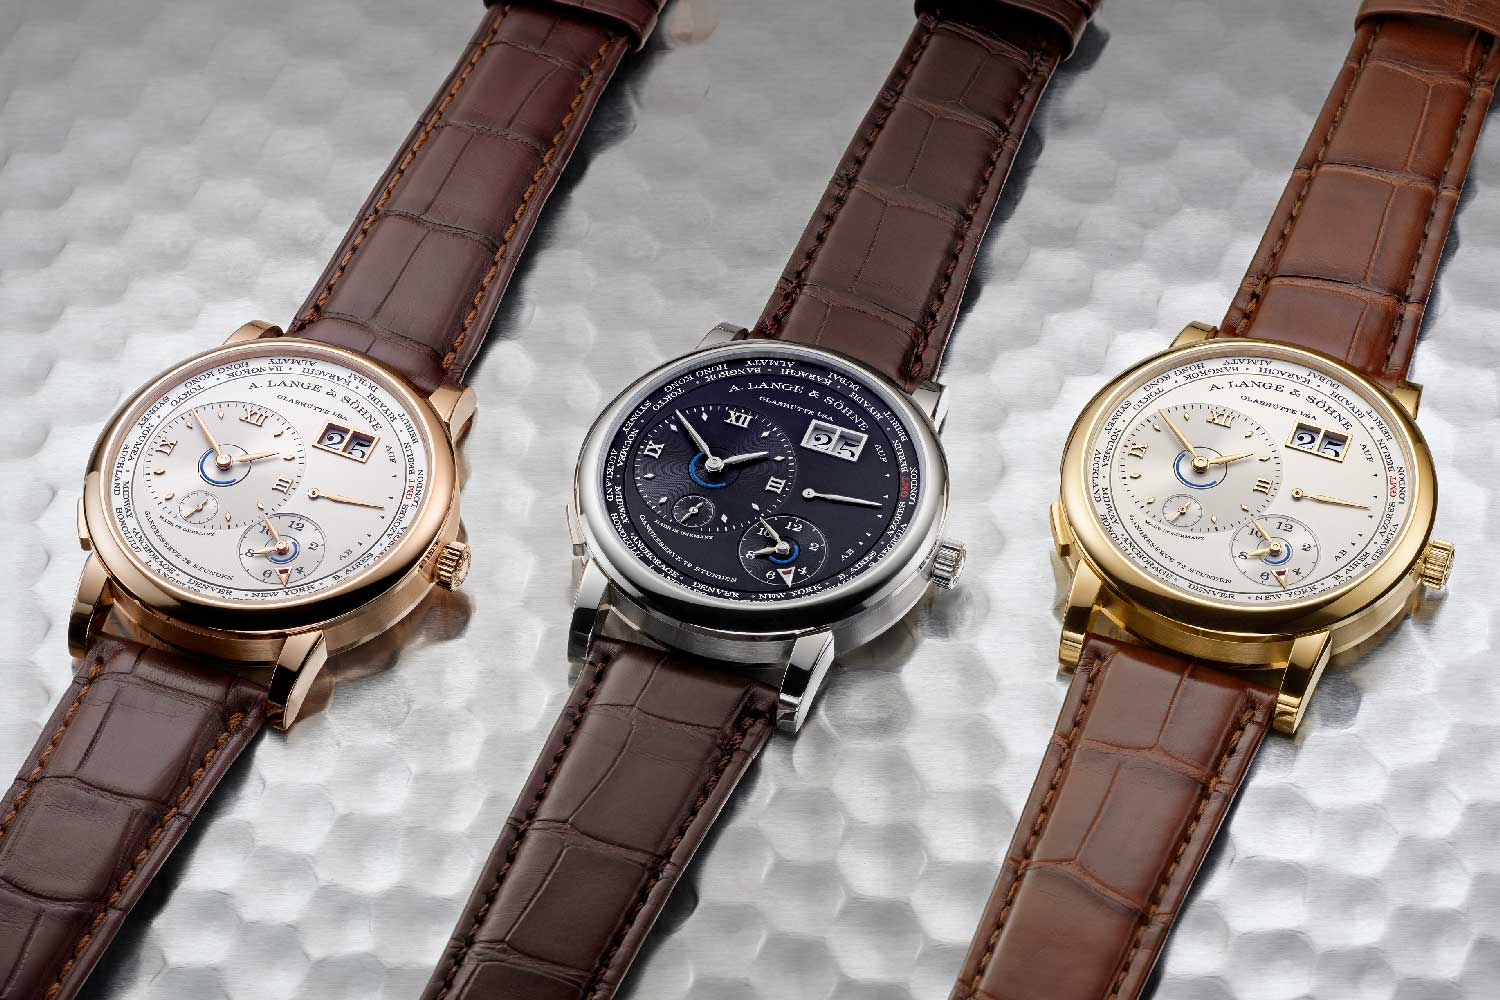 The 2020 Lange 1 Time Zone will come in three precious metal options: yellow gold with a solid silver champagne dial, a white gold version with black solid silver dial and lastly a pink gold version with a solid silver argenté dial